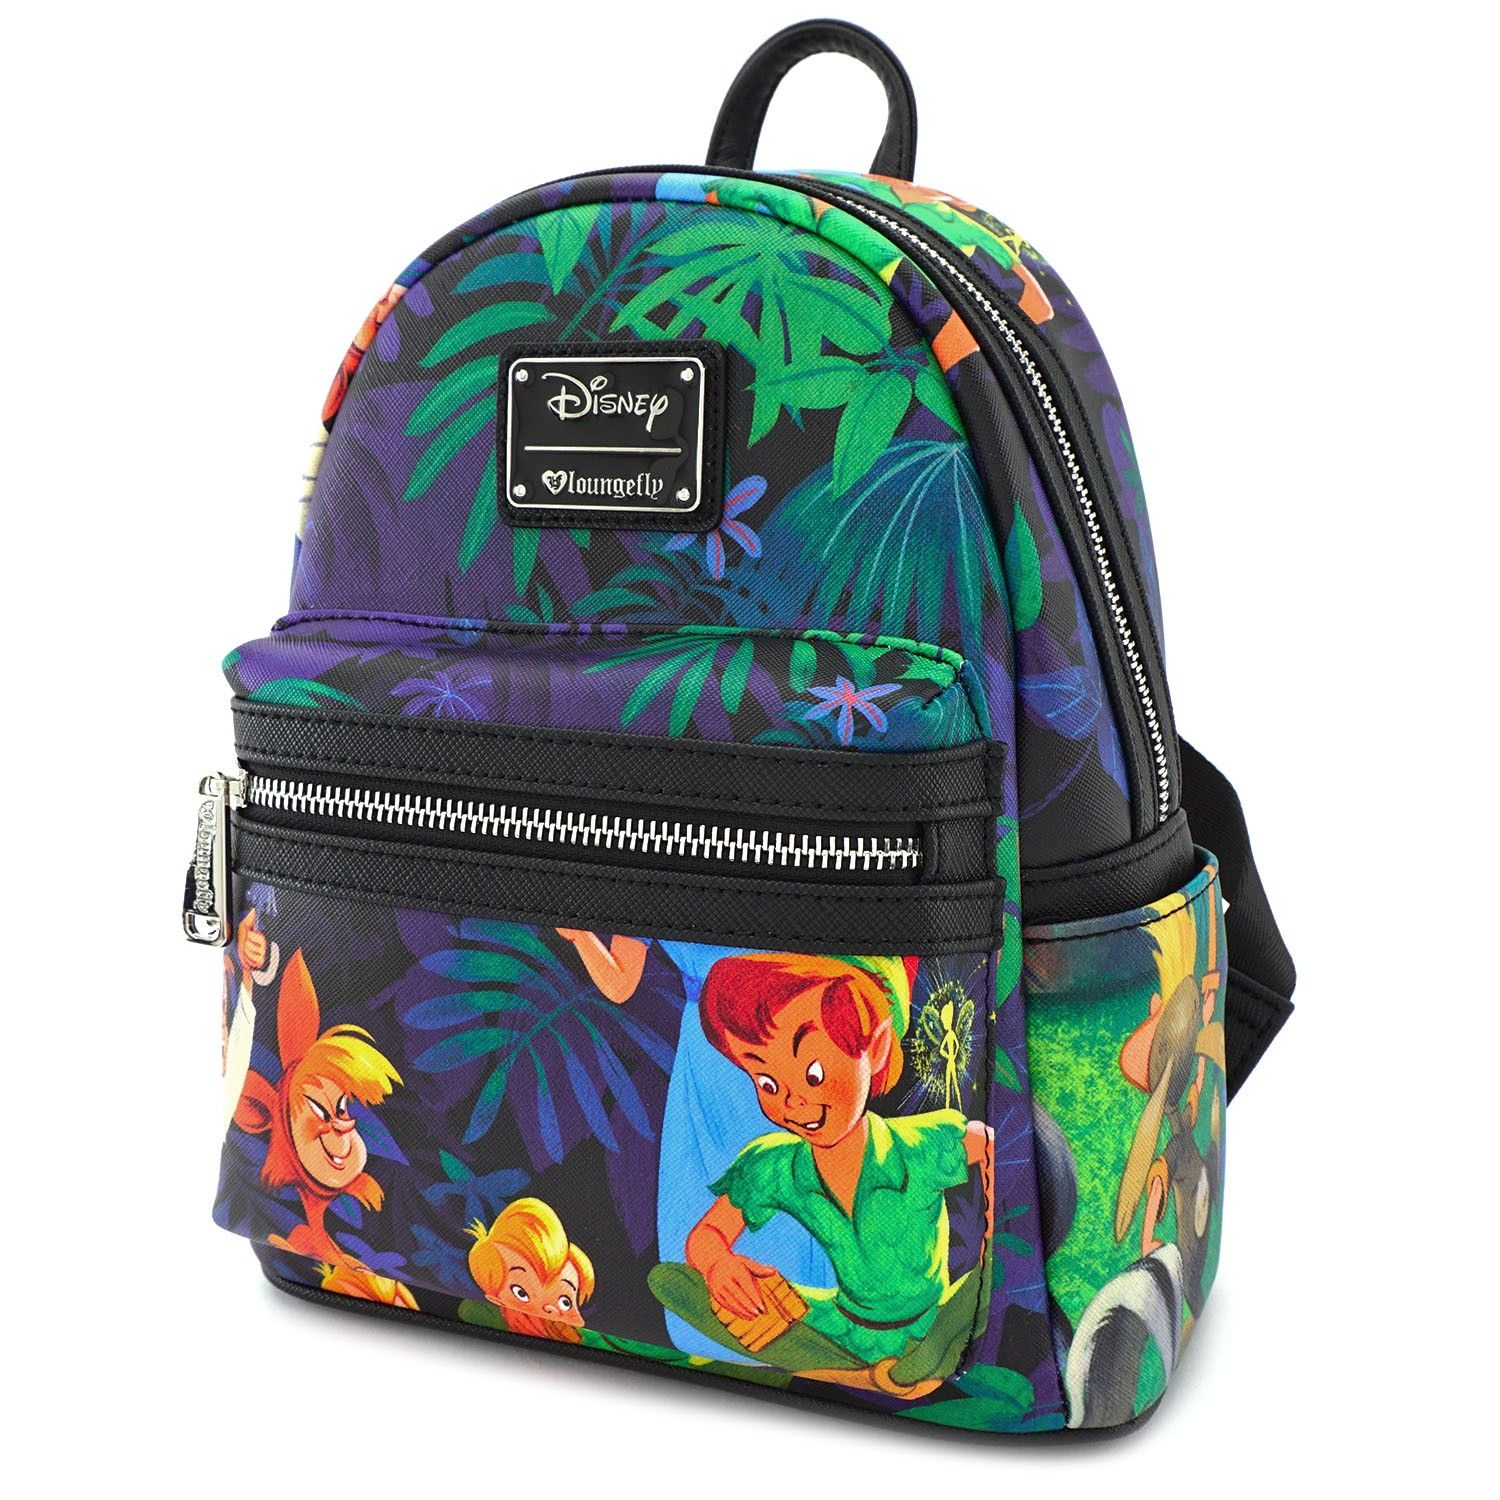 2390e409ab5 Loungefly x Peter Pan Scenes Print Faux Leather Mini Backpack - Disney -  Brands